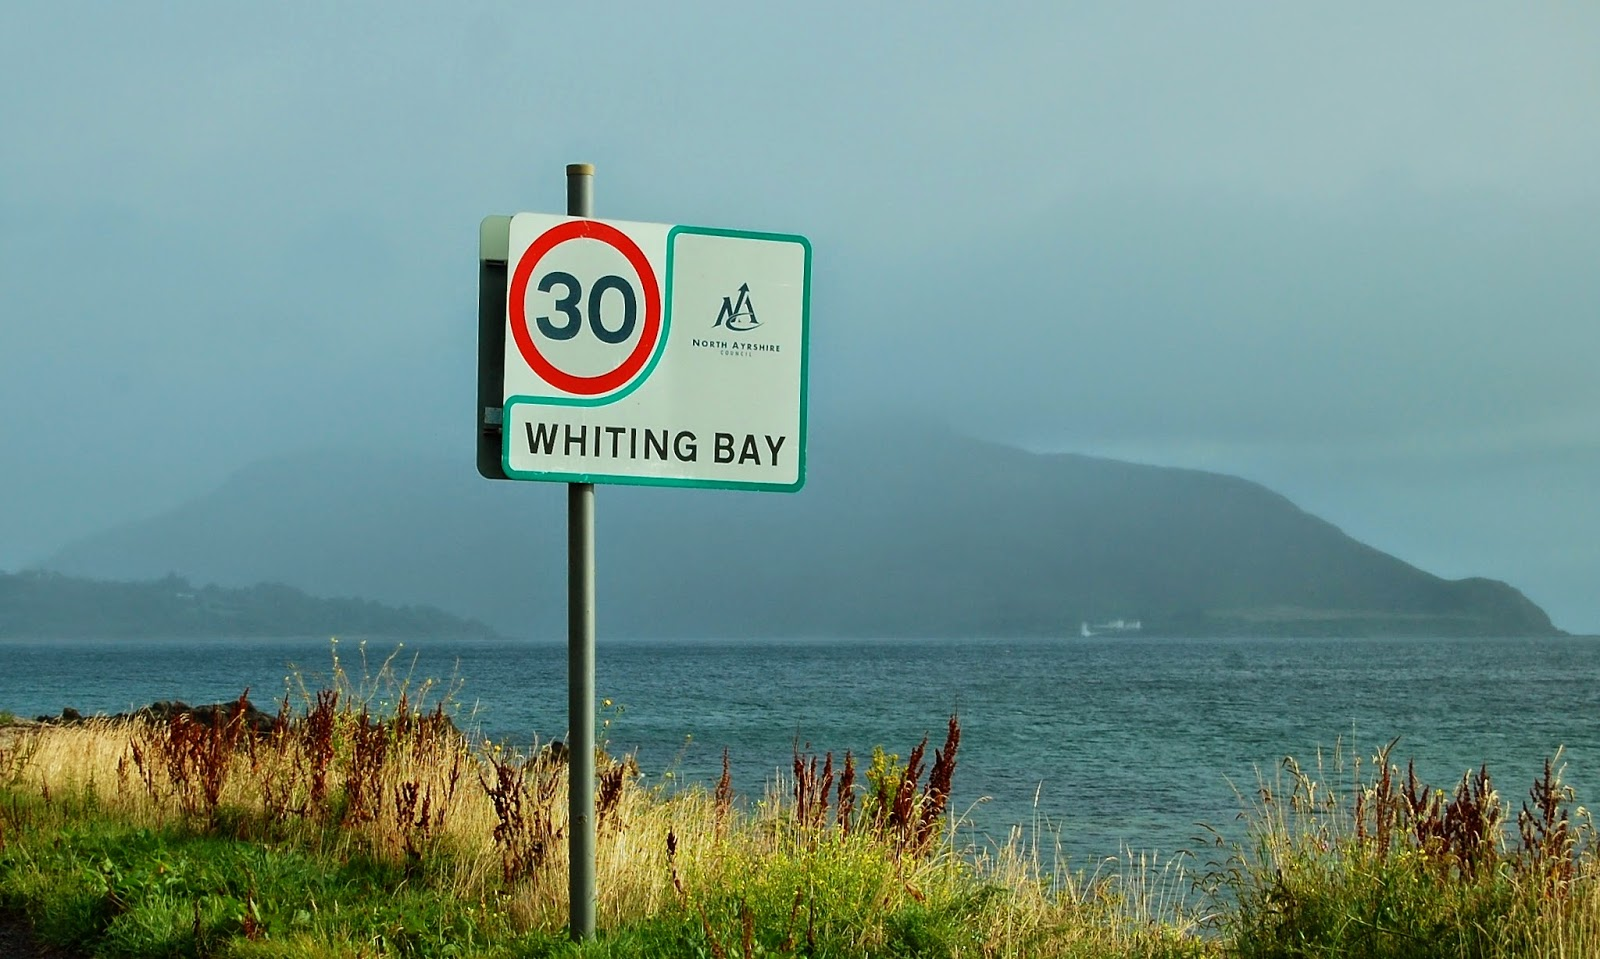 Whiting Bay on the Isle of Arran